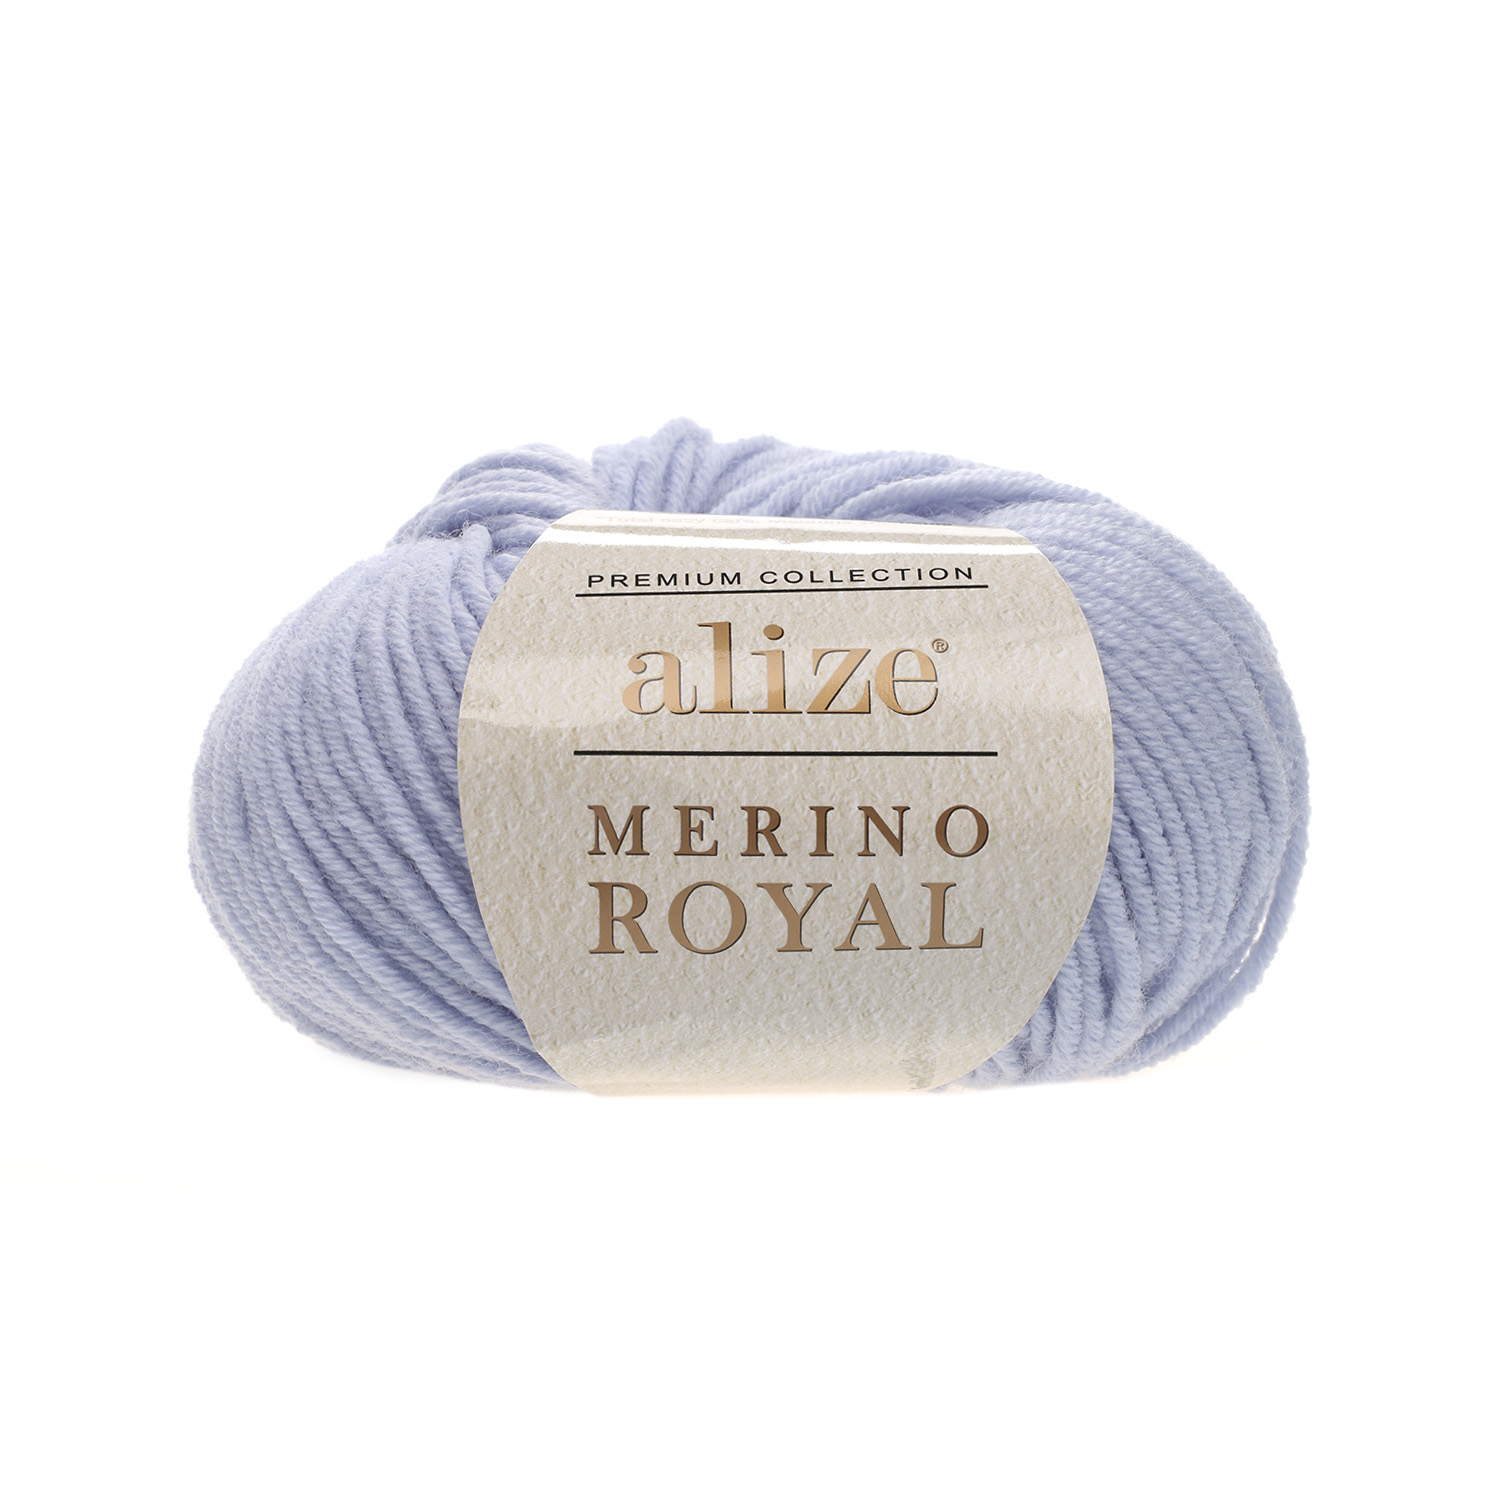 Svetlo modrá 100% merino vlna Merino Royal 480 (Superwash)